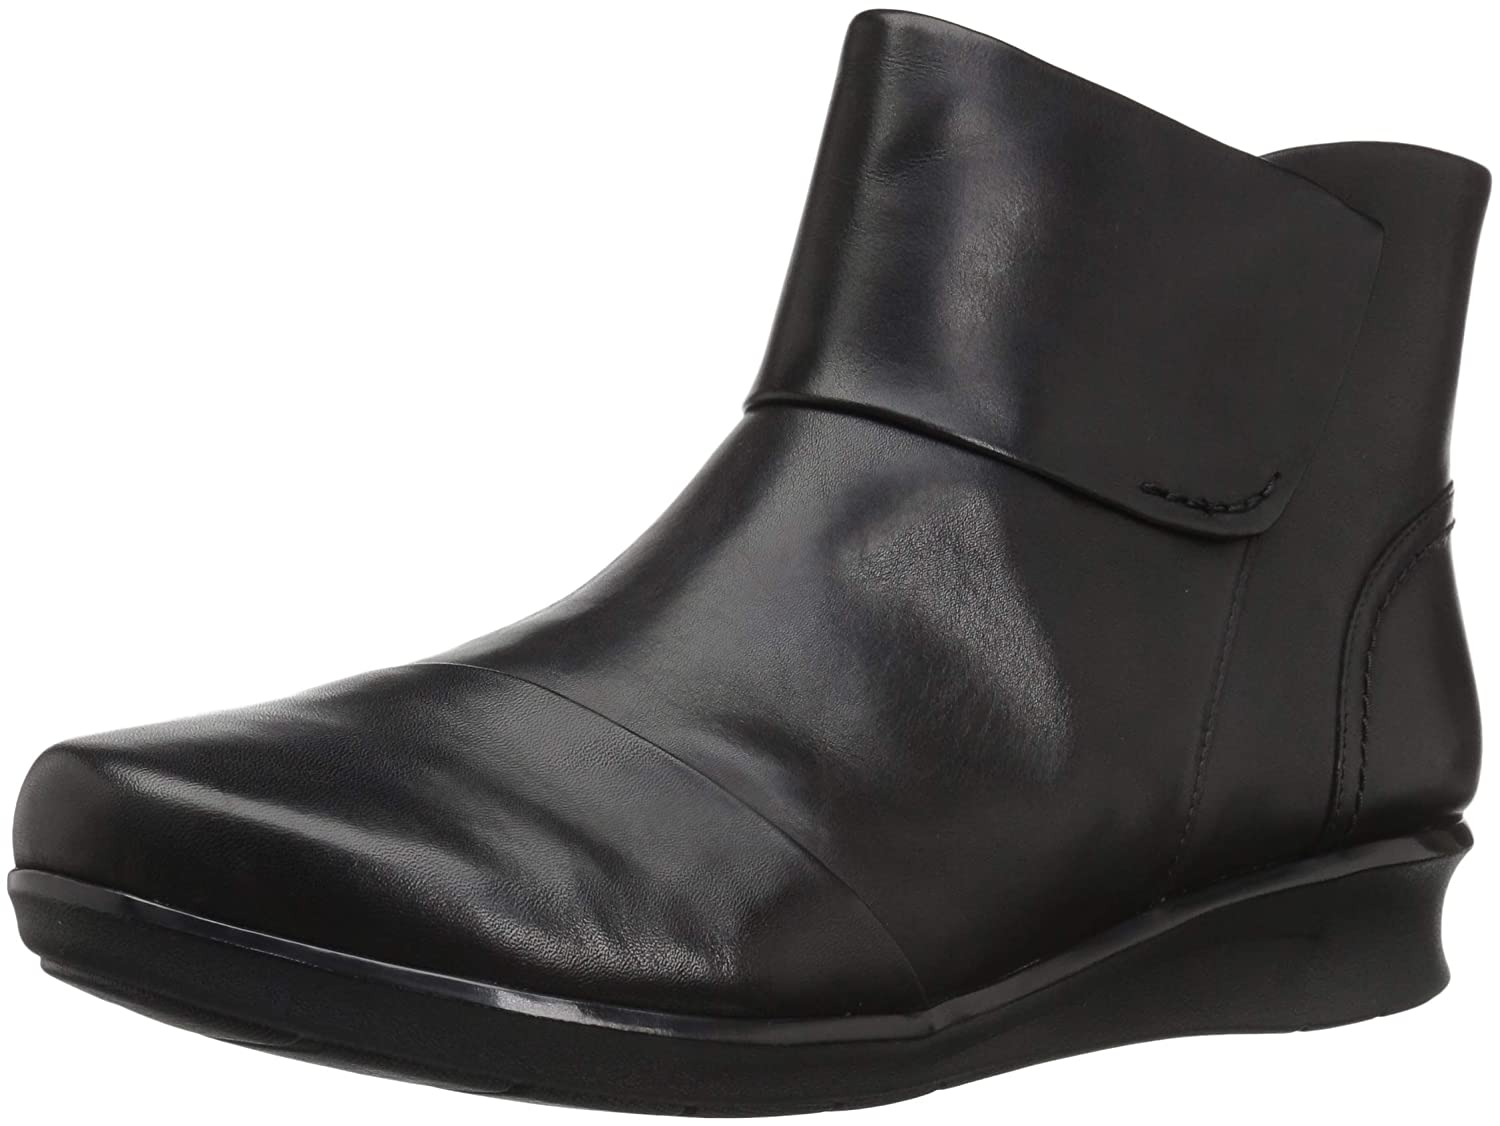 Black Leat Clarks Women's Hope Track Fashion Boot